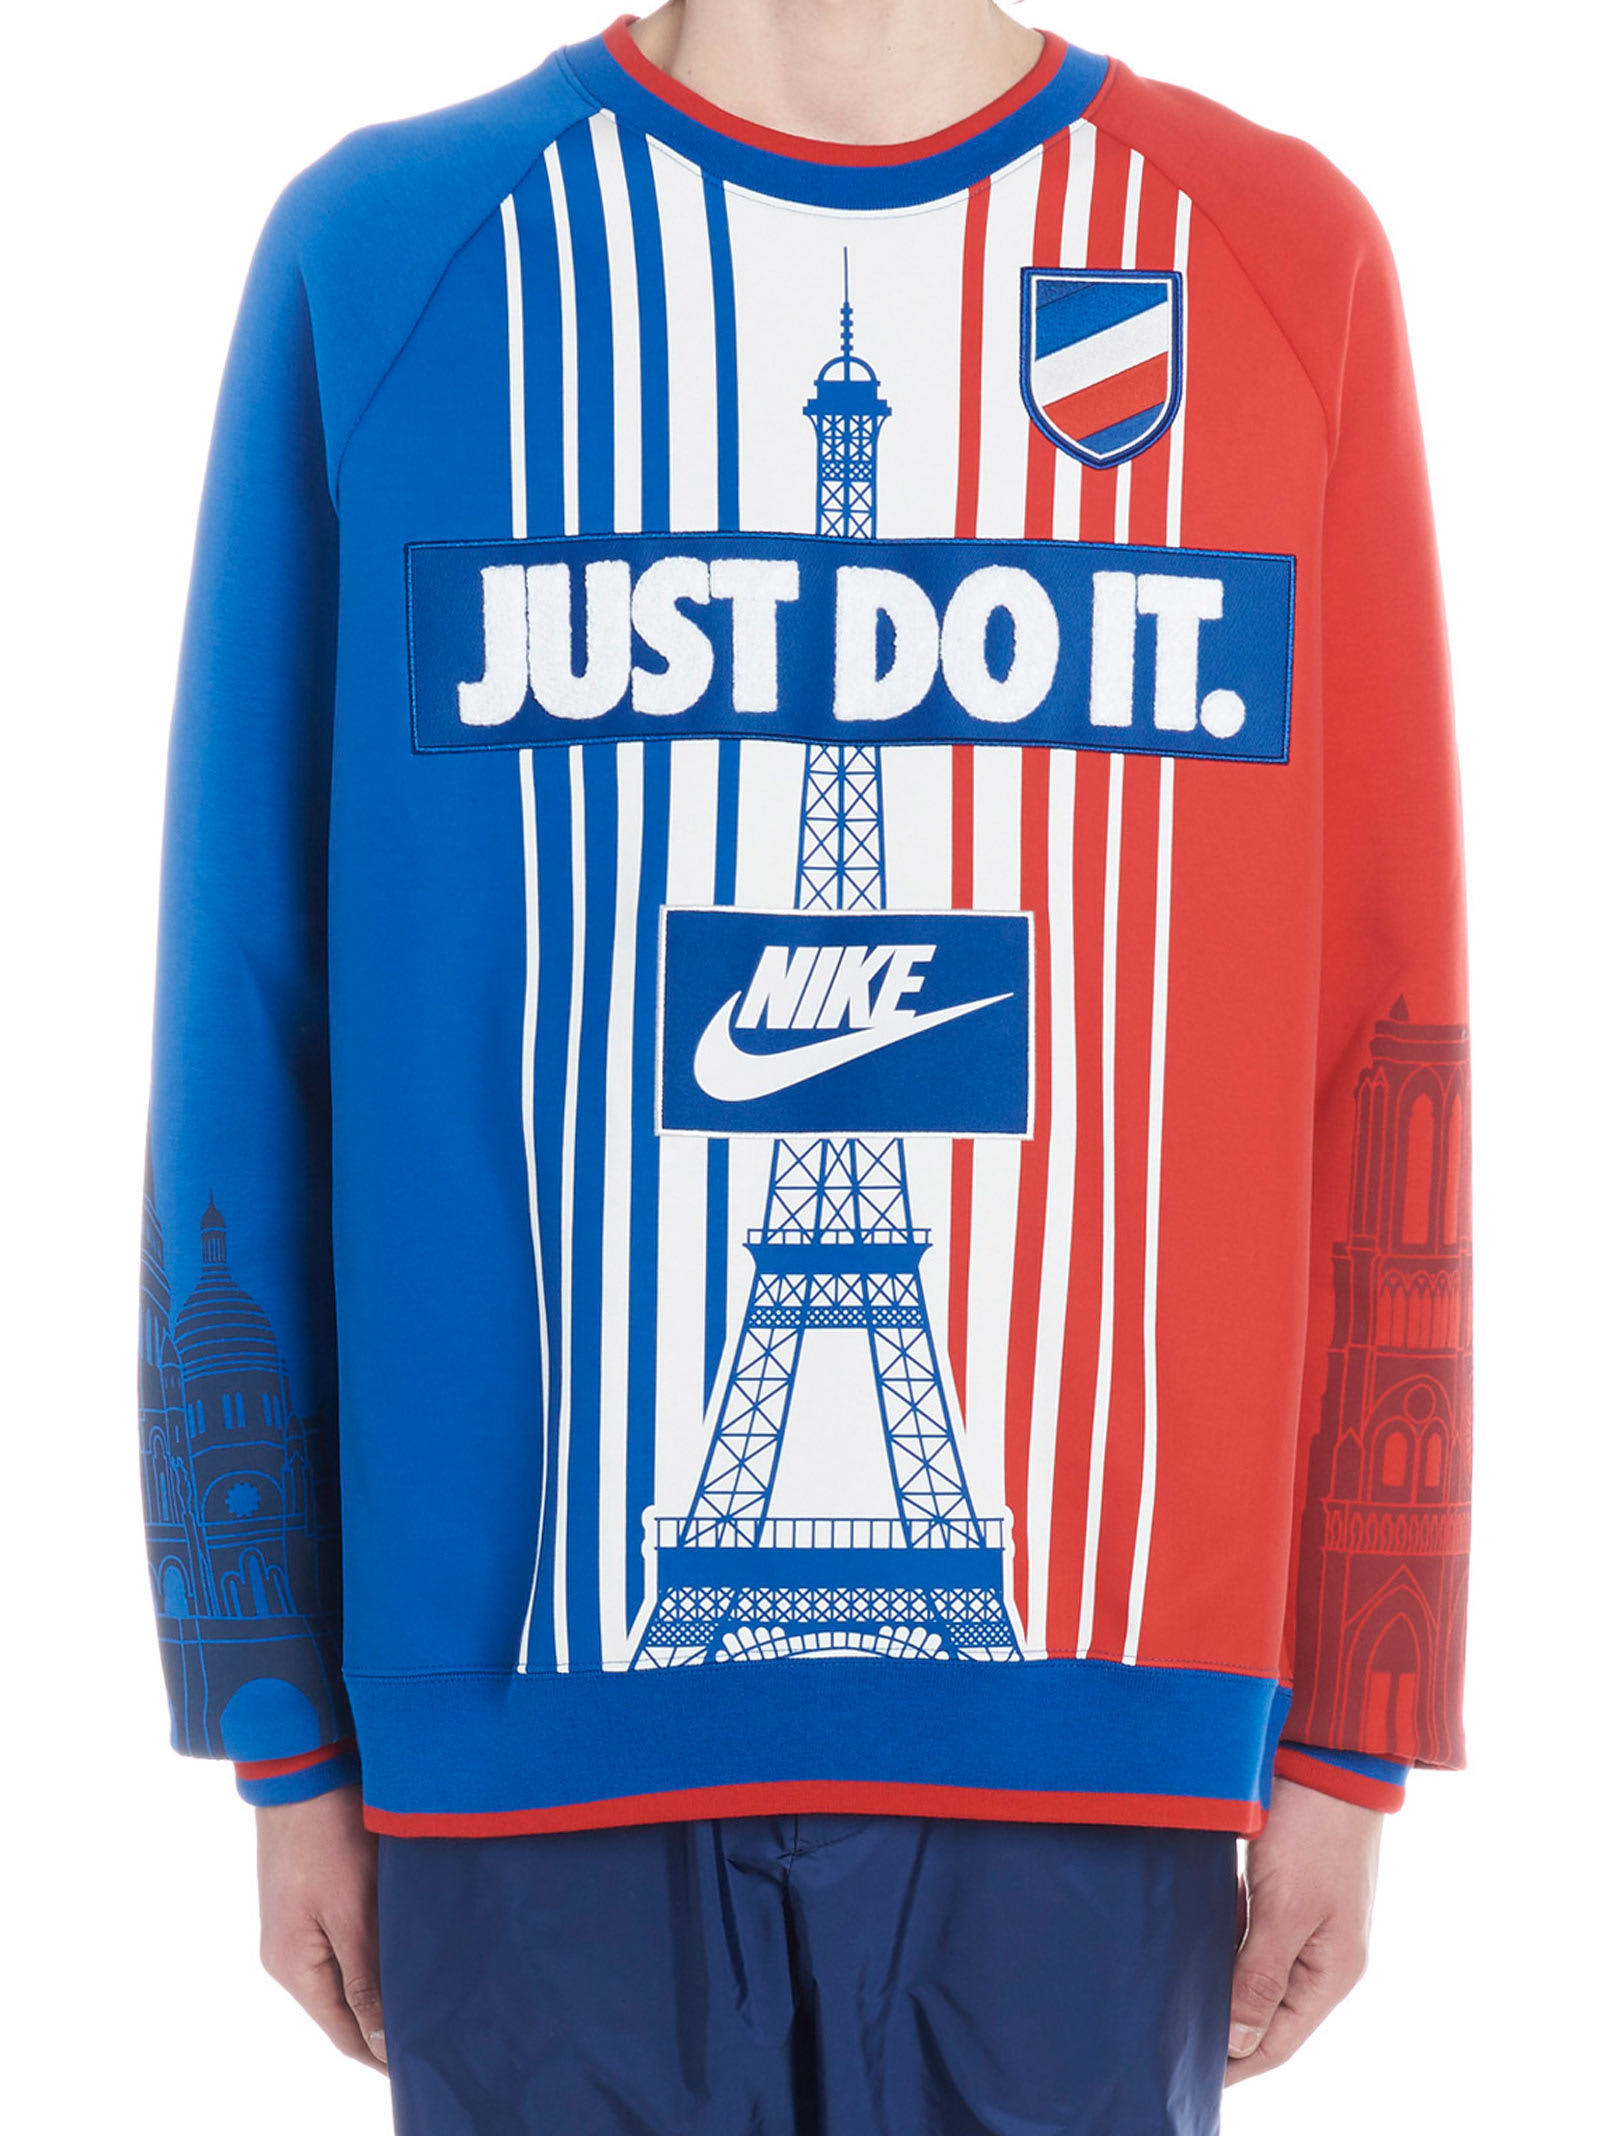 It' Do Sweatshirt It' Nike Nike 'just Sweatshirt 'just Do thQrdCs